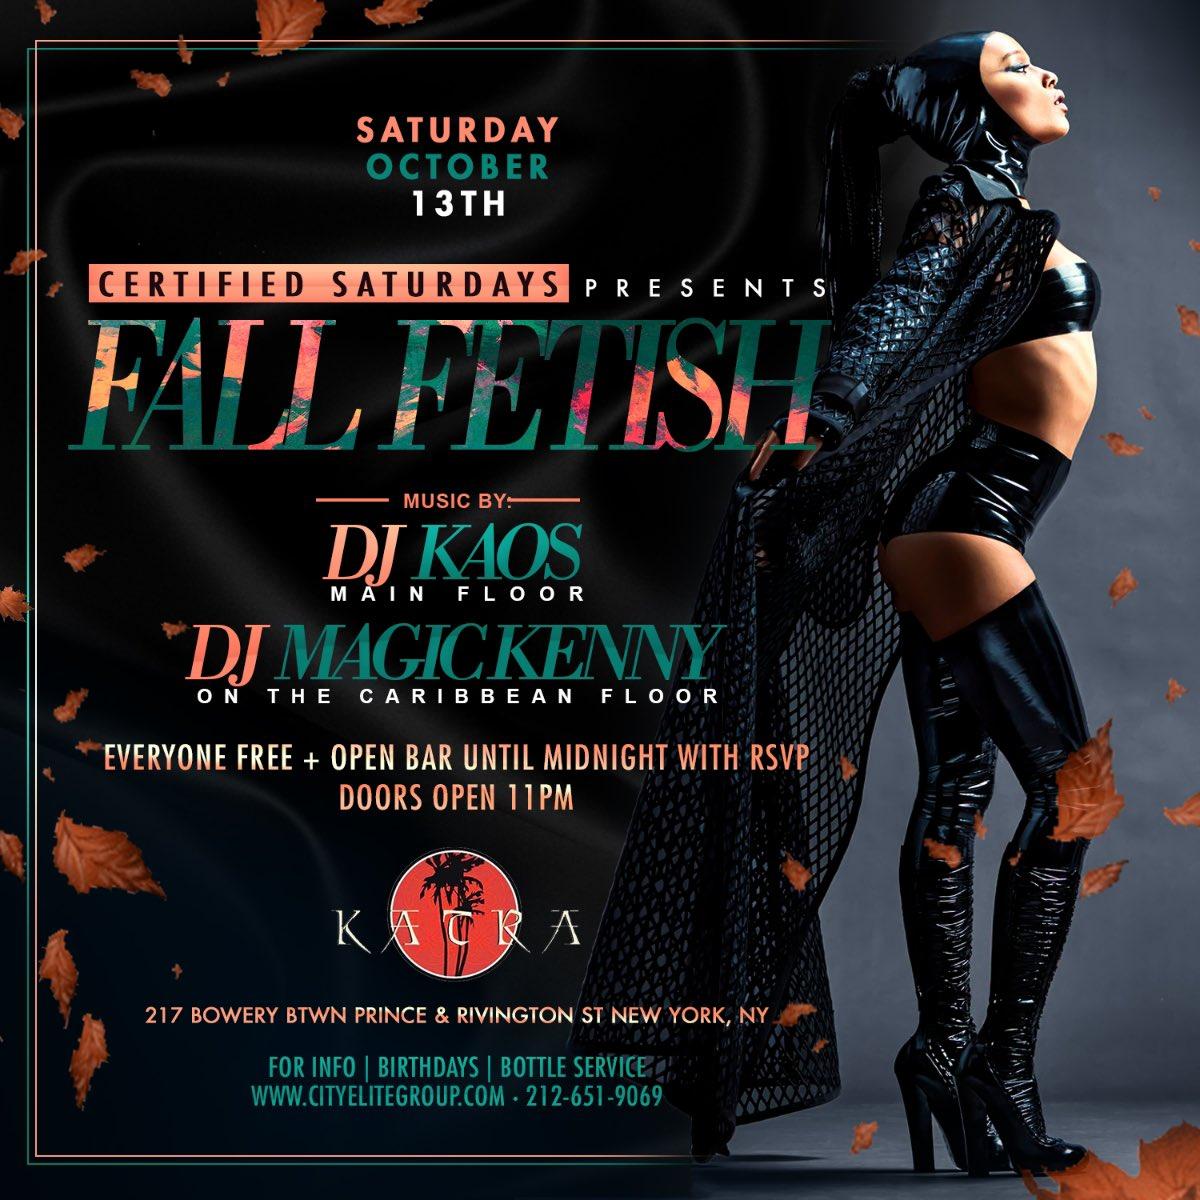 #CertifiedSaturdays @Katralounge With @DJKAOSNYC1 And @djmagickenny  #LadiesNight #Number1SaturdayParty In The City @pquilter1972 @NiteTables  @nyccompton ...